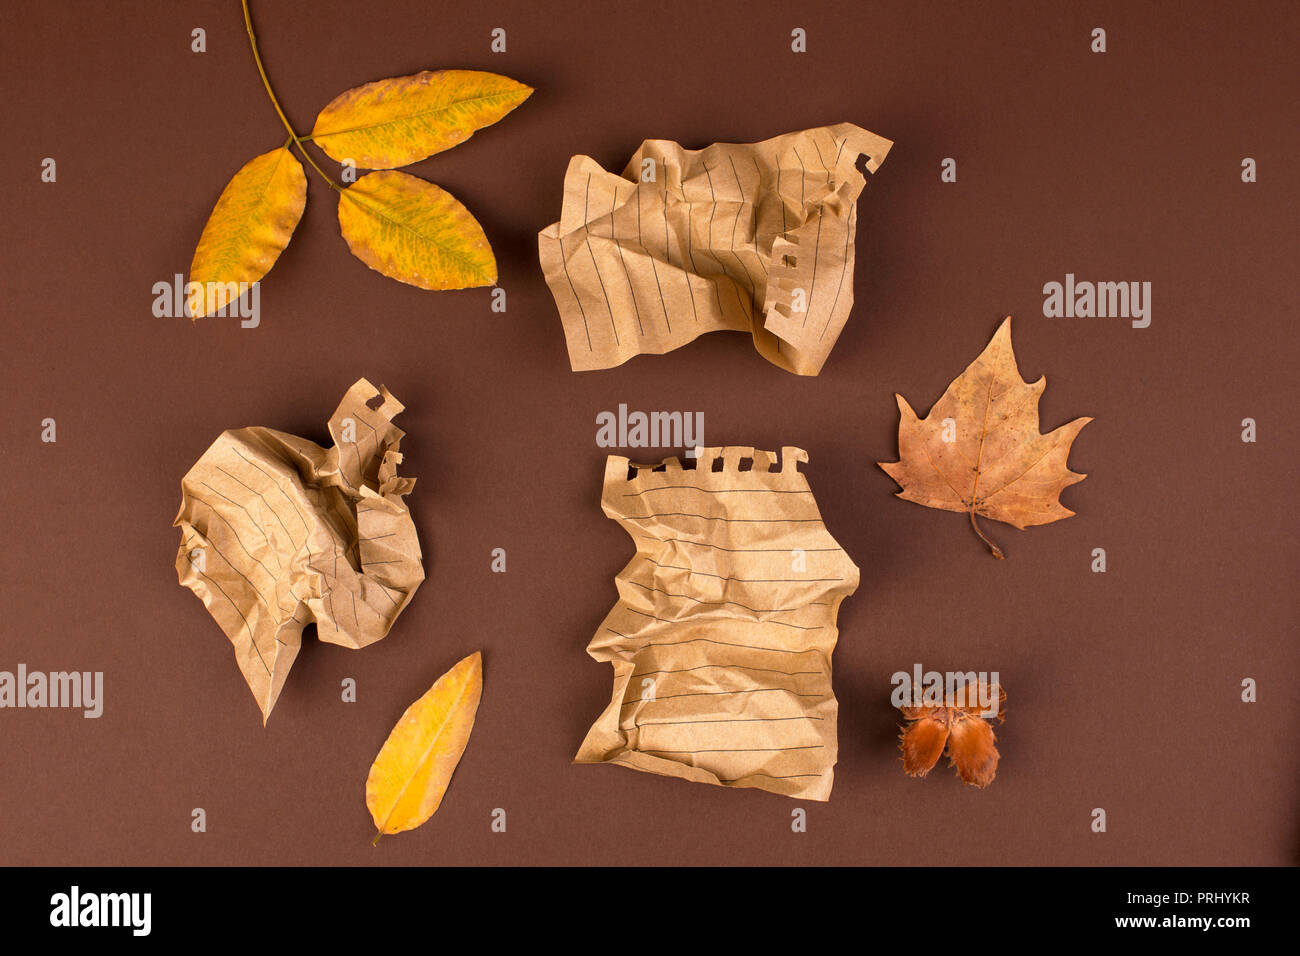 Notepad and crumpled sheets for writing, difficult work to write a letter. Free space for text. Autumn atmosphere and yellow leaves. Top view. Copy space. - Stock Image